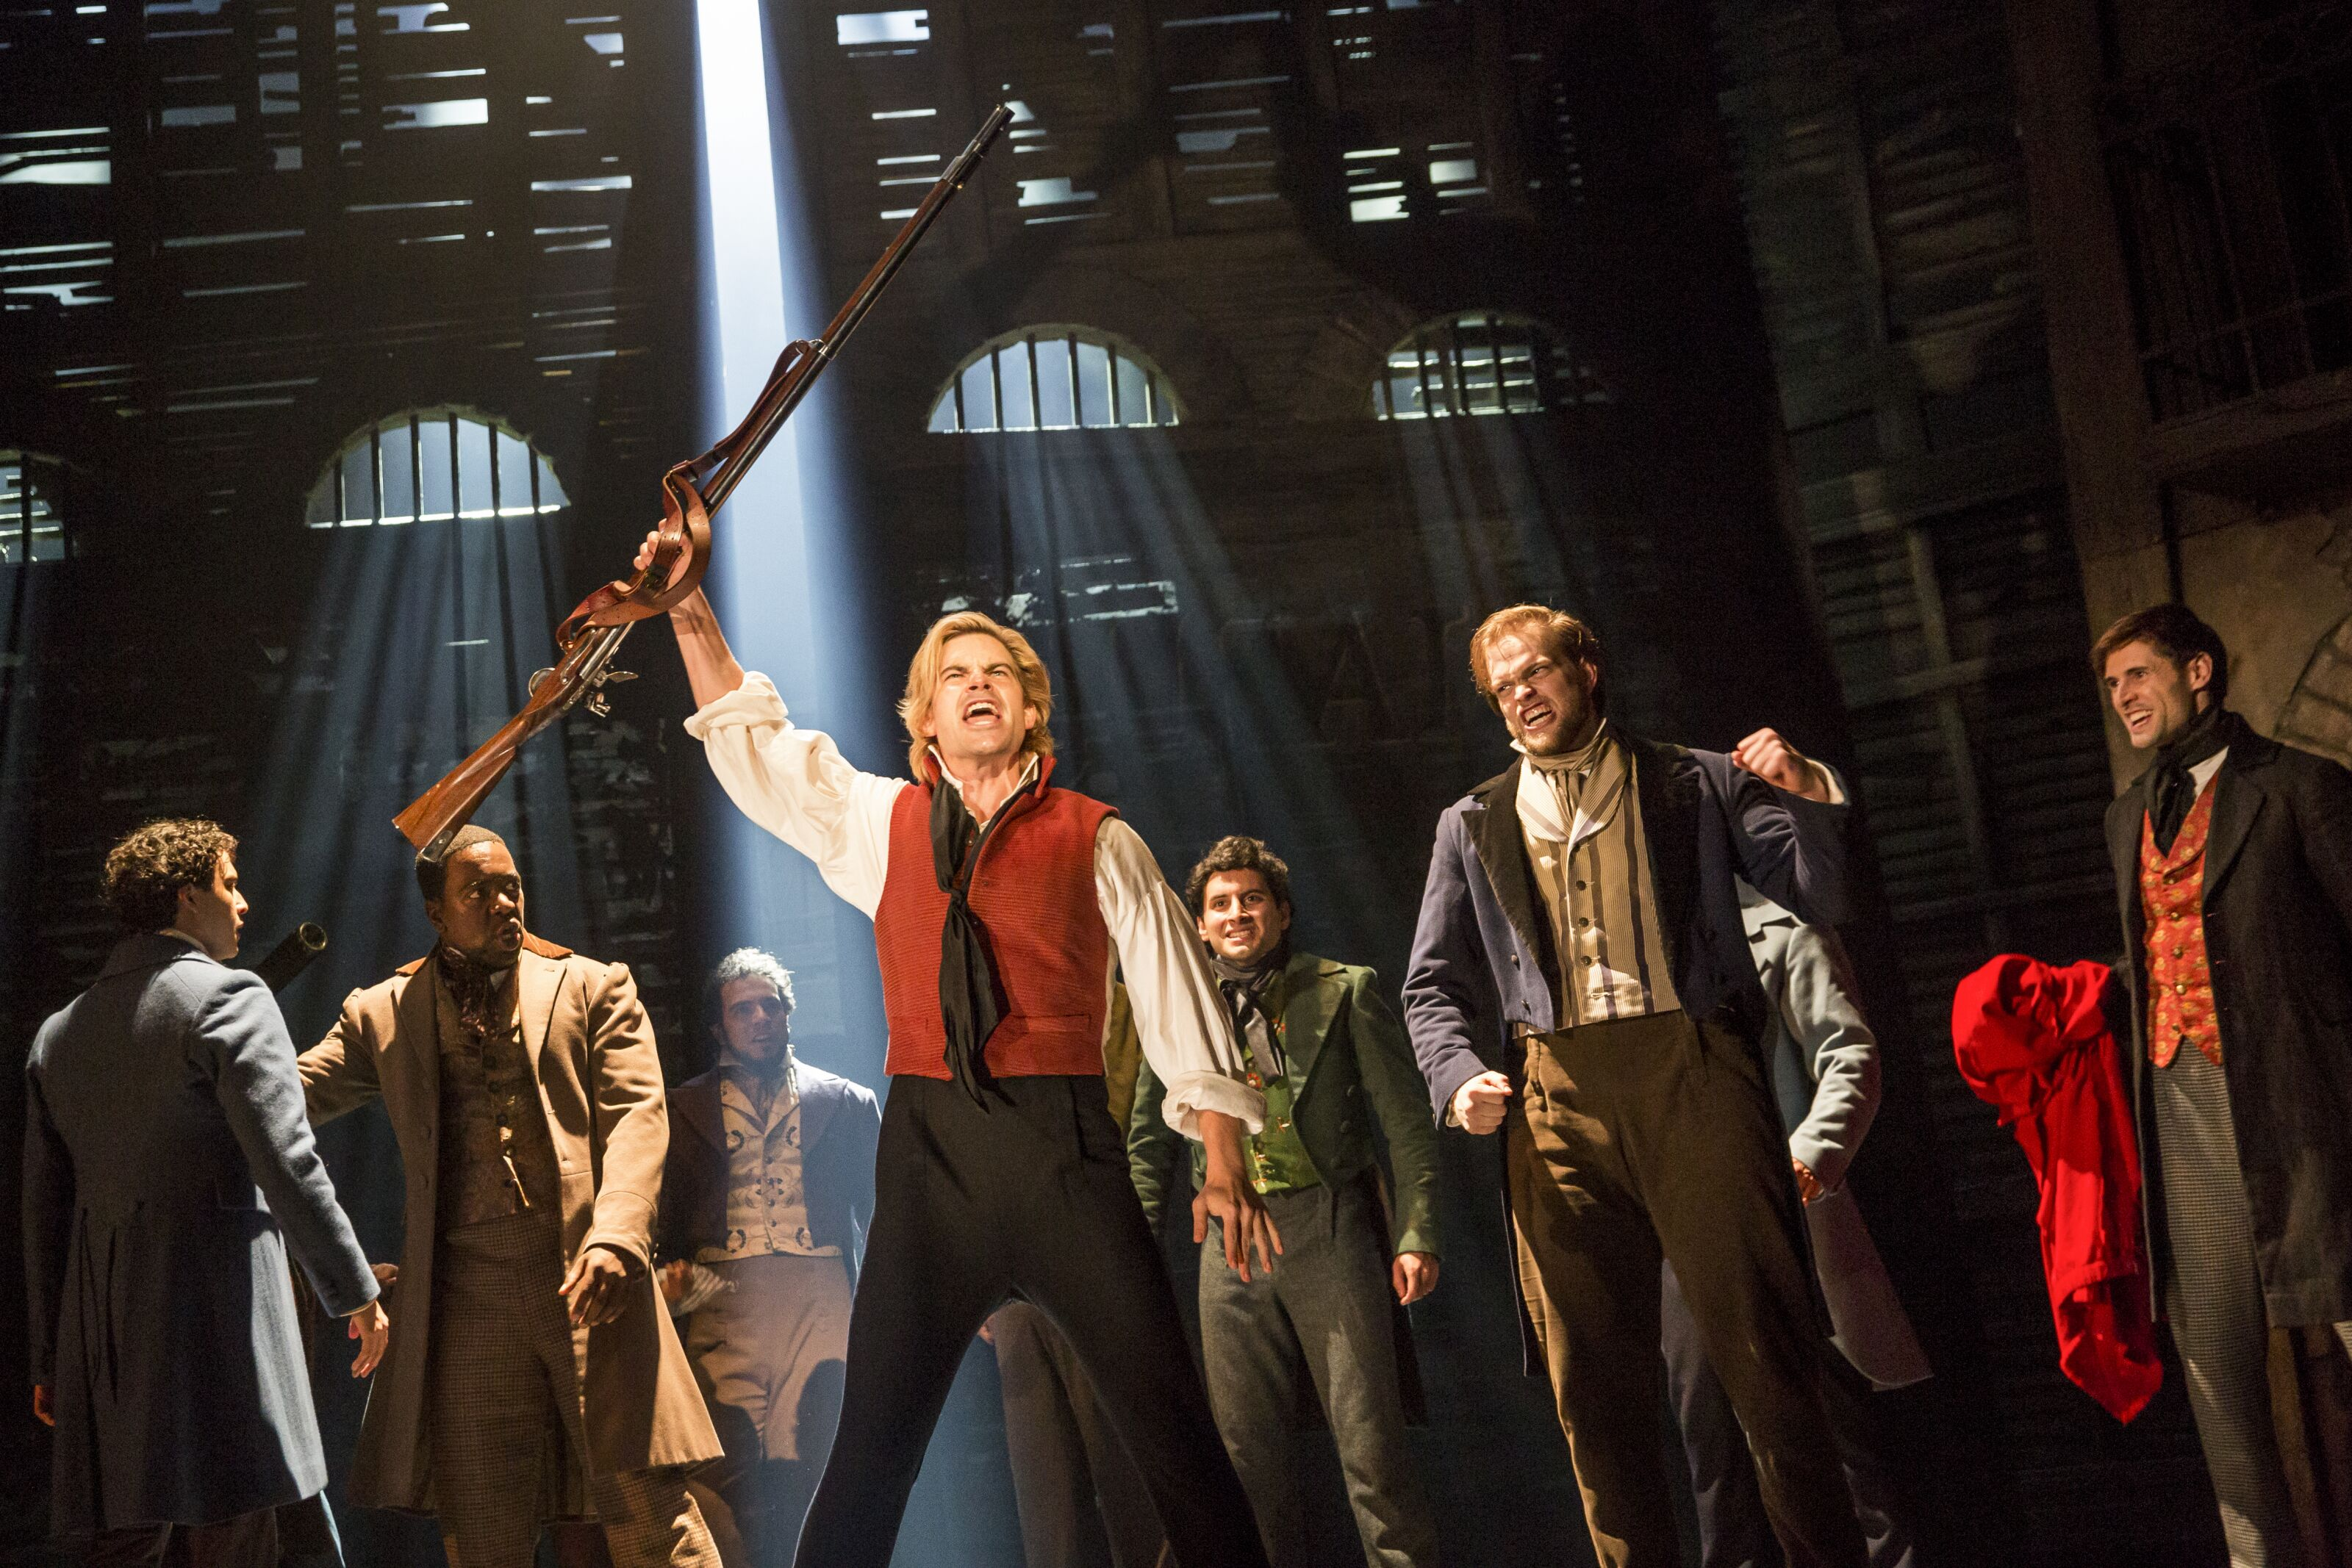 Les Misérables: An iconic musical that continues to have one day more